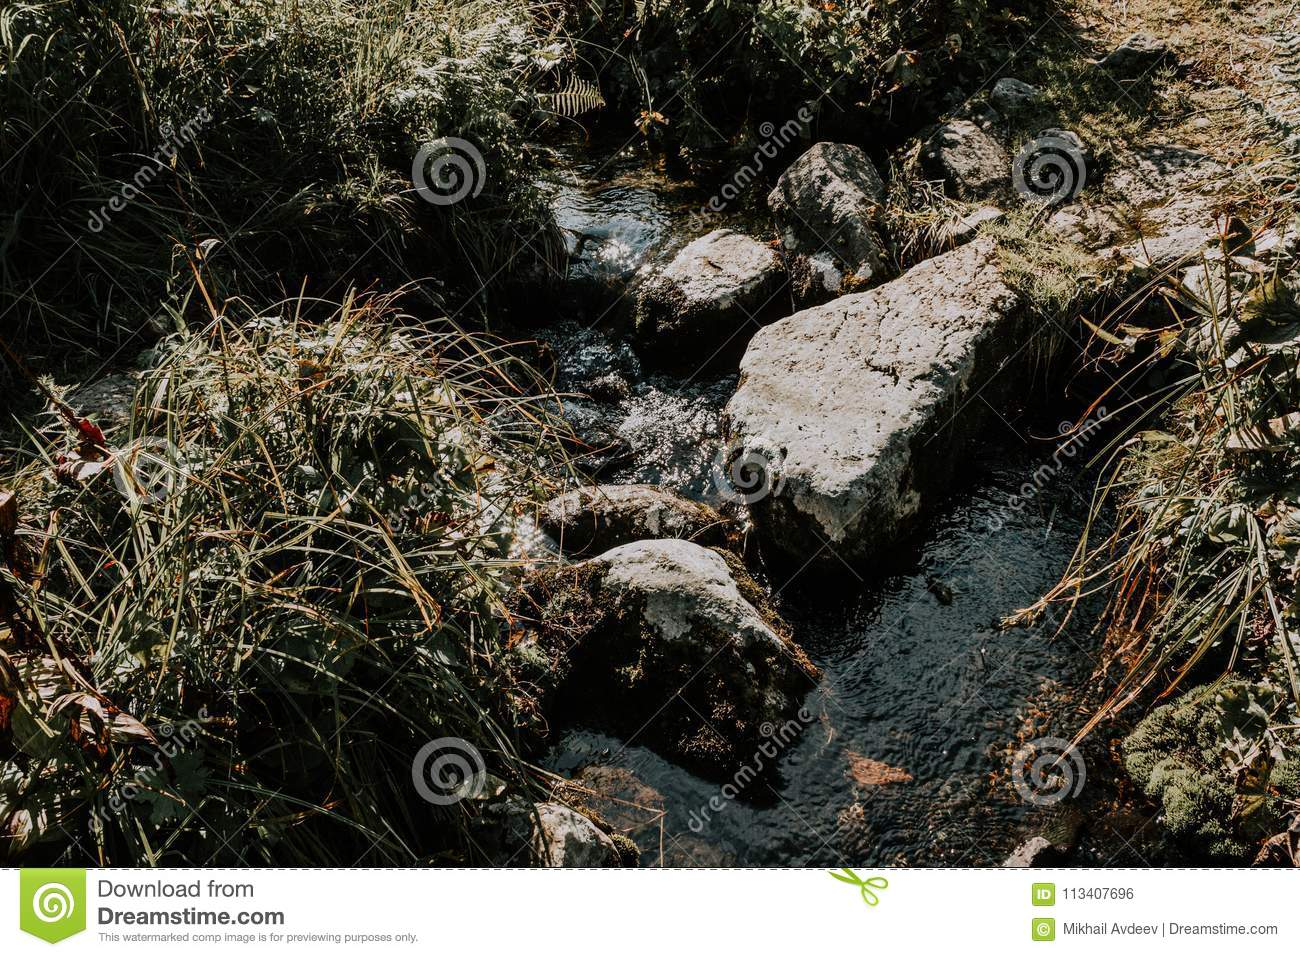 Mountain stream, a spring in the rocks